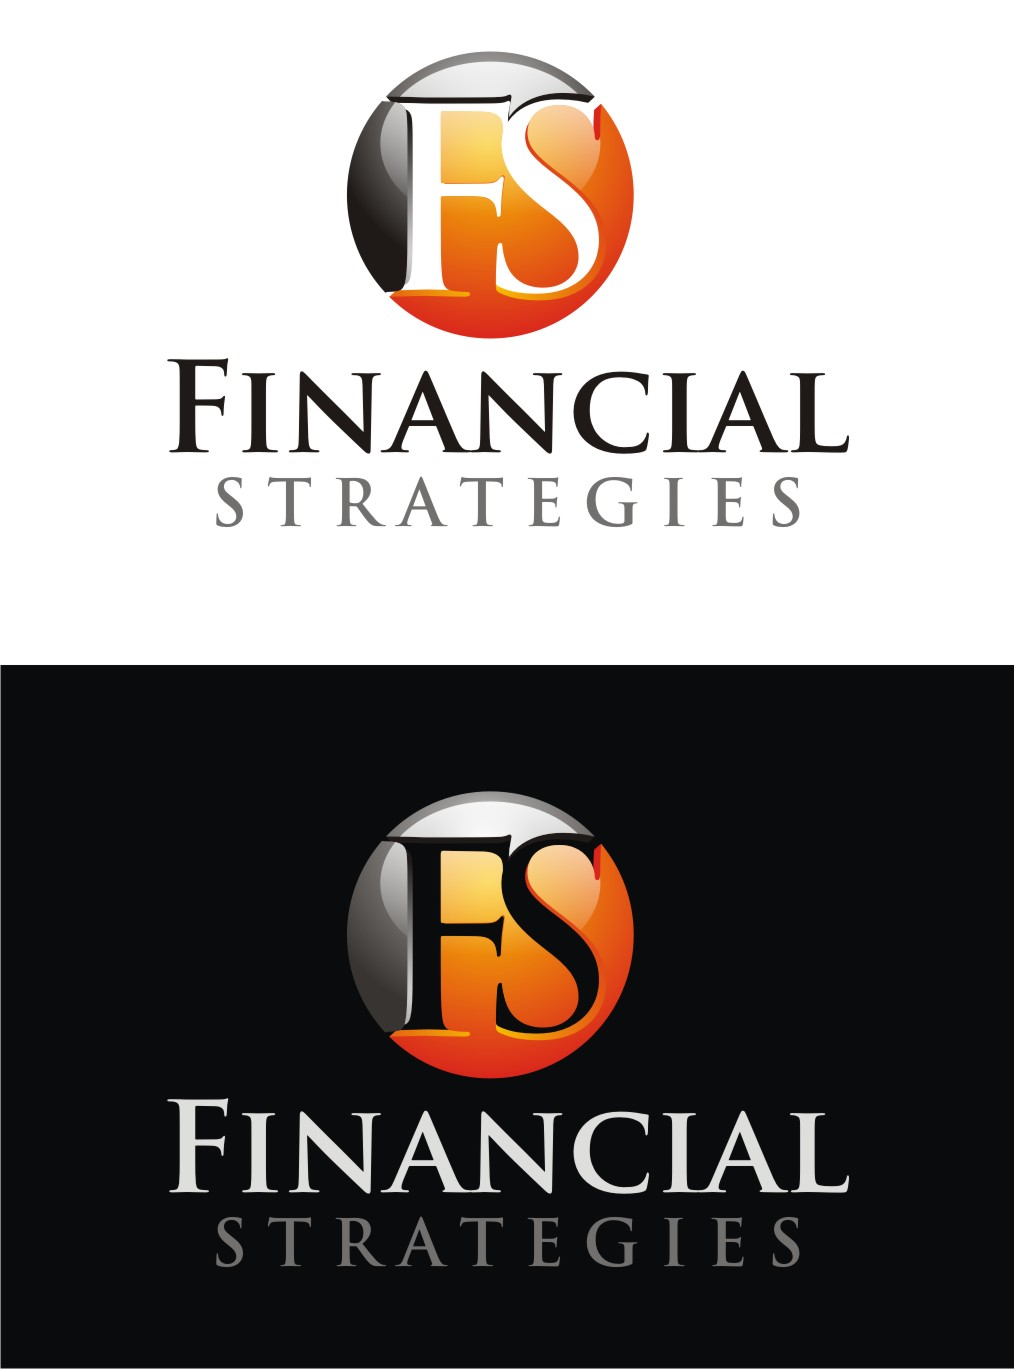 Logo Design by Reivan Ferdinan - Entry No. 67 in the Logo Design Contest Logo Design Needed for Exciting New Company FS Financial Strategies.